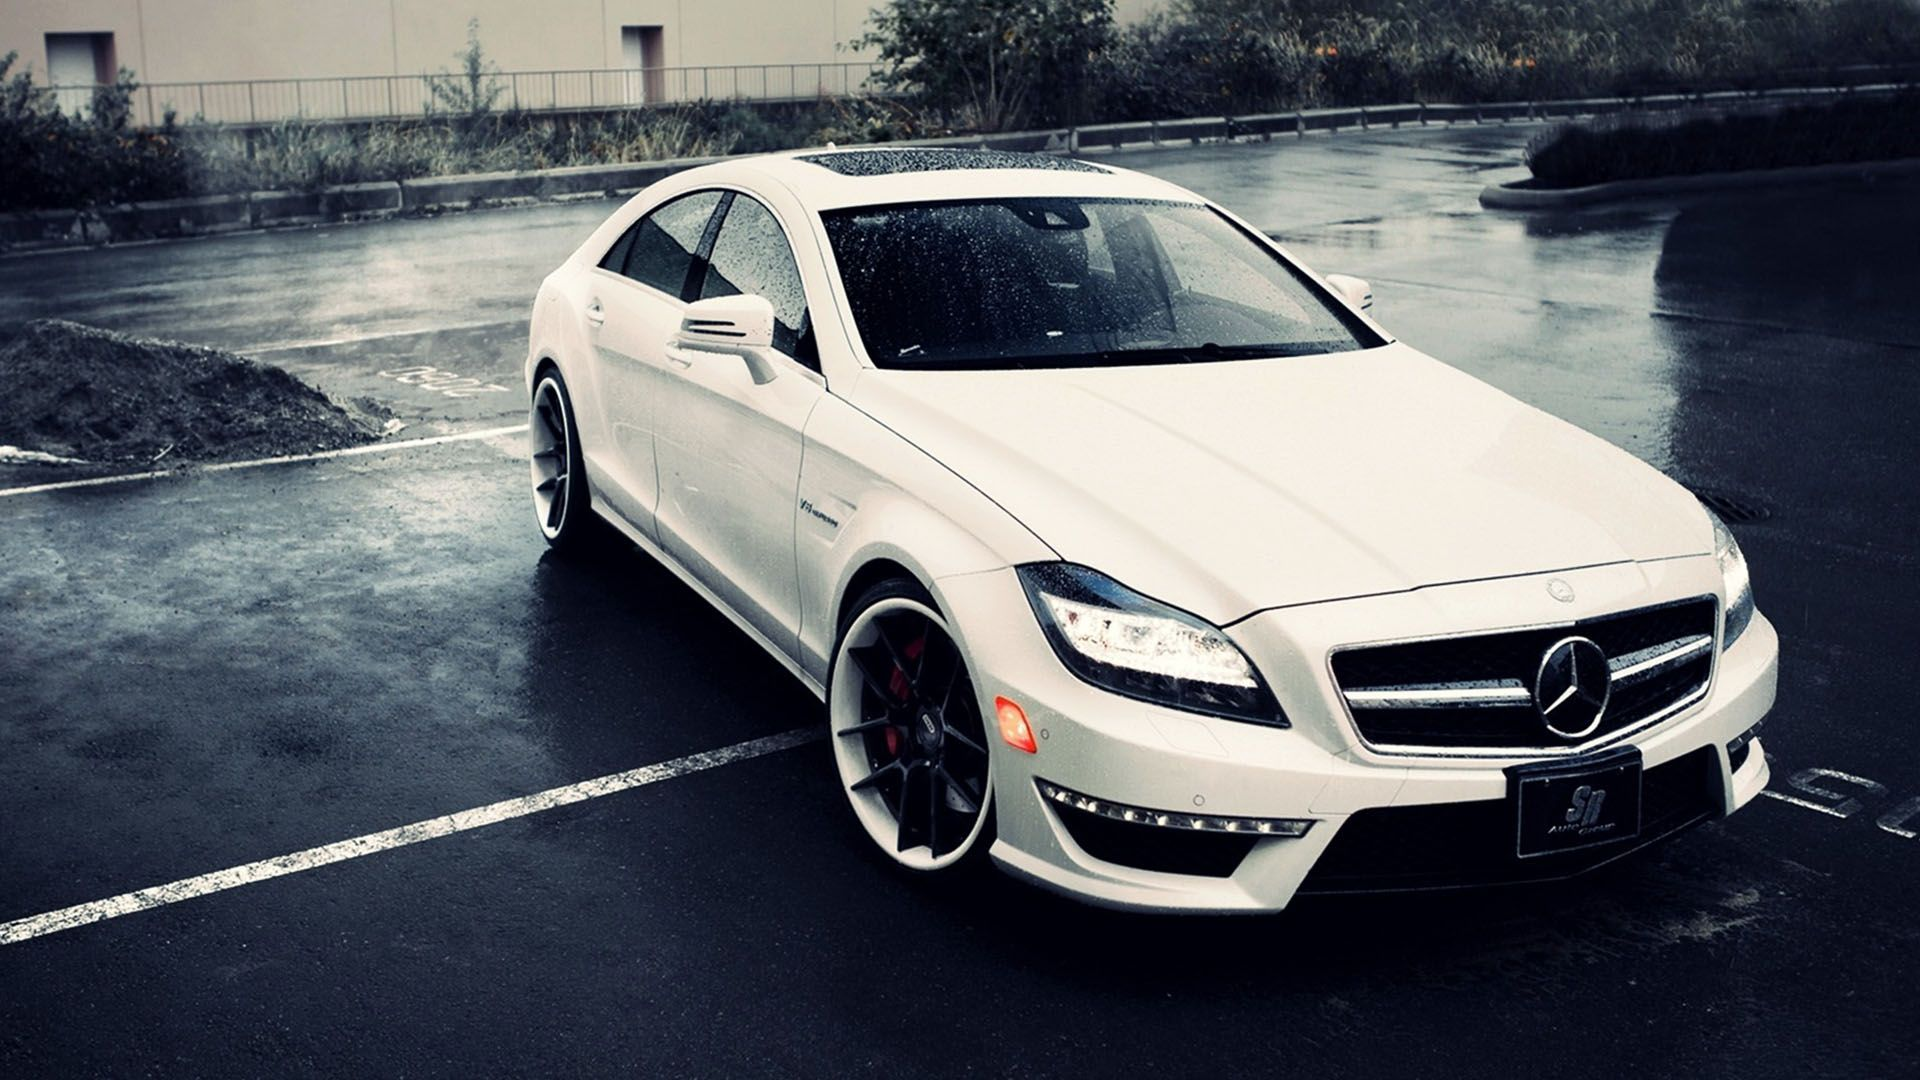 Mercedes Benz Cls 63 Car Wallpaper 1920x1080 17433 Mercedes